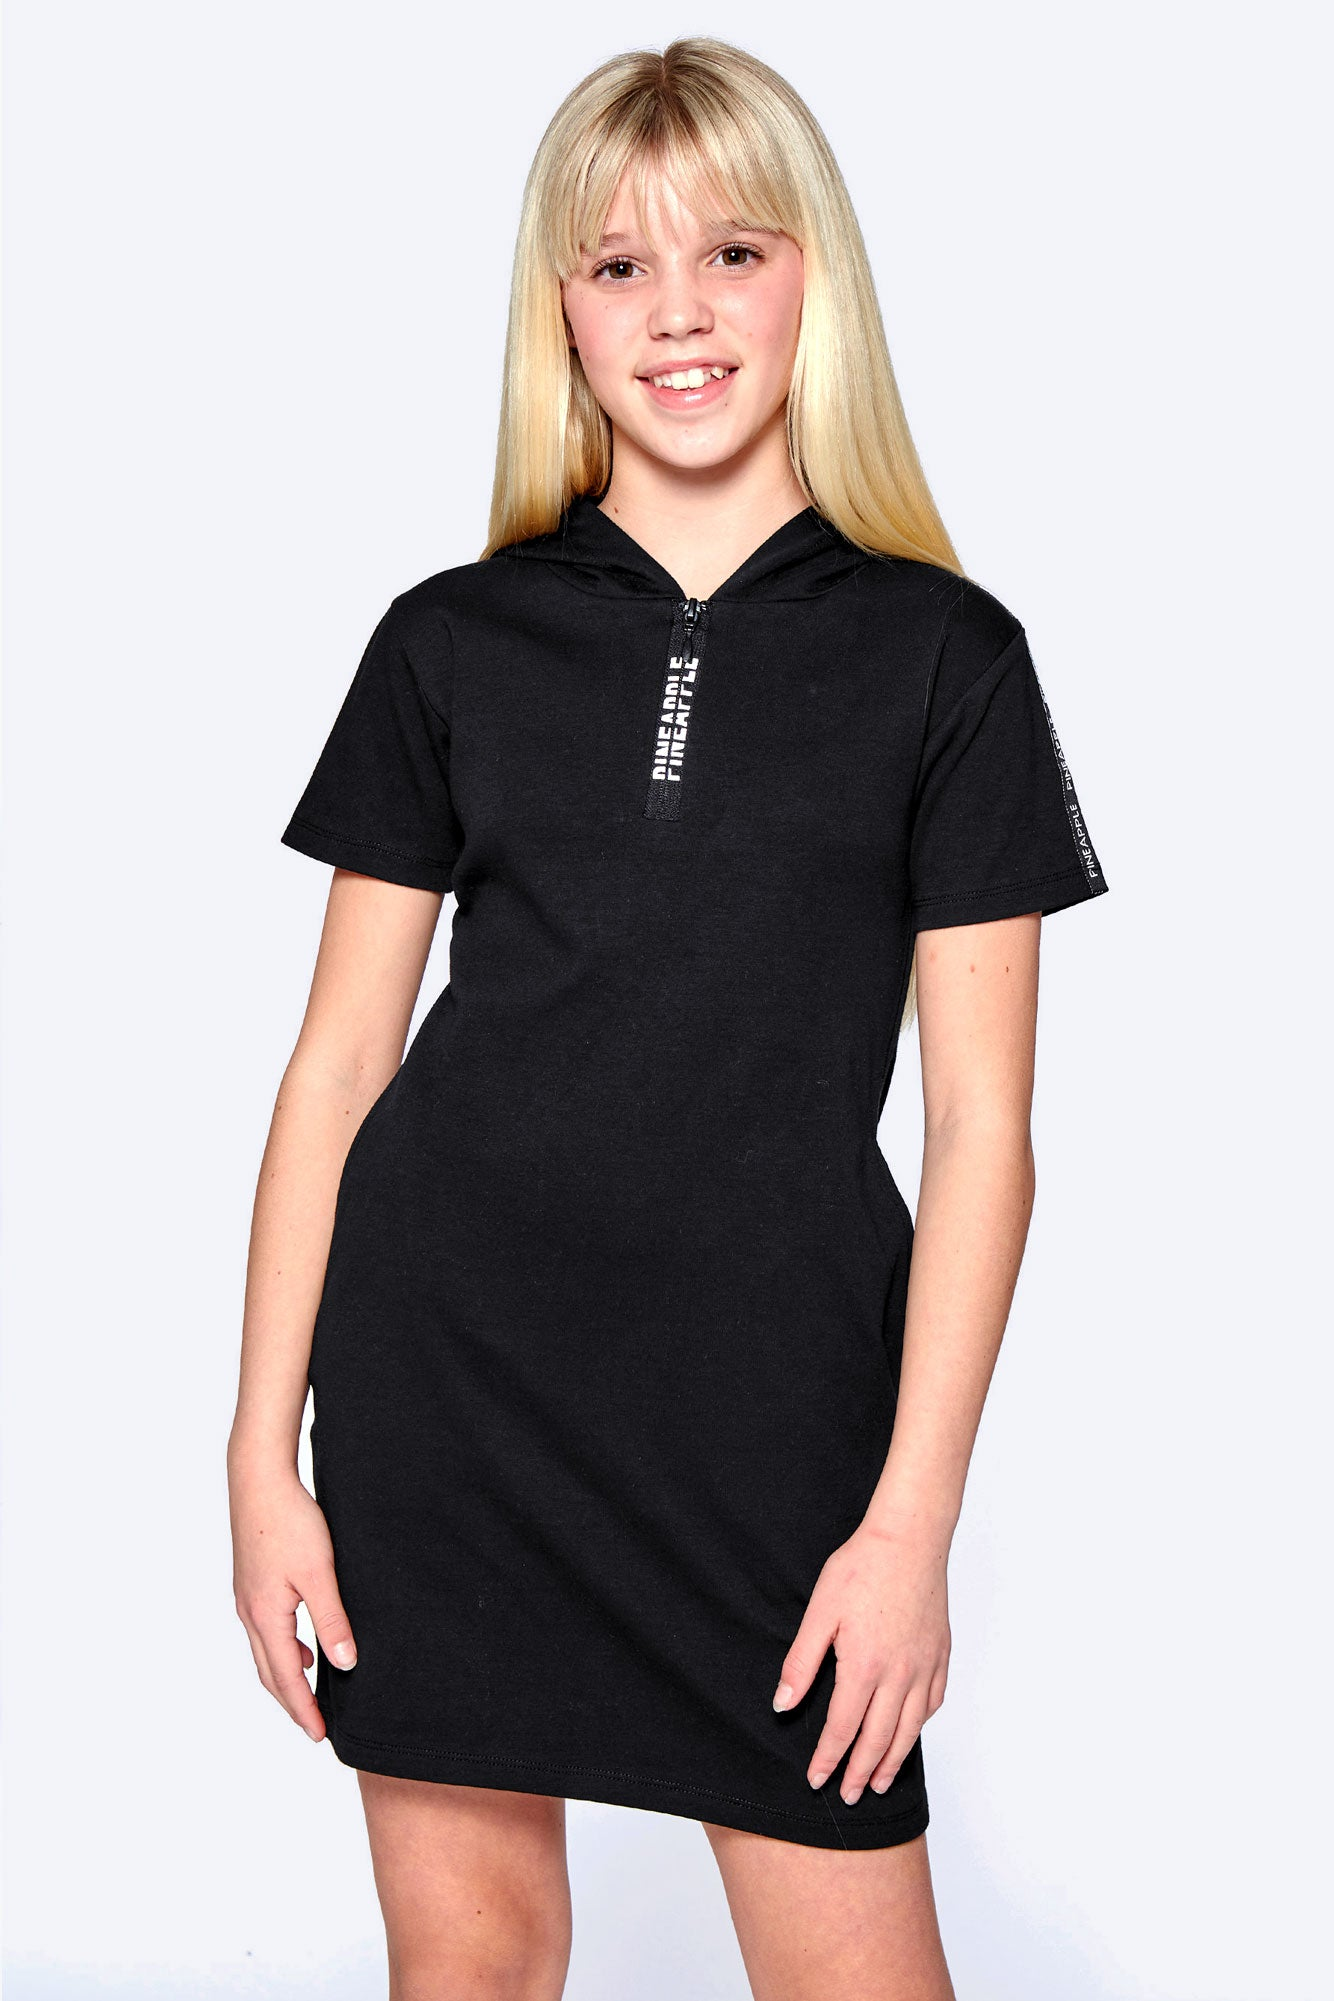 Pineapple Dance Girls' Black T-Shirt Hoodie Dress DR0015CD1